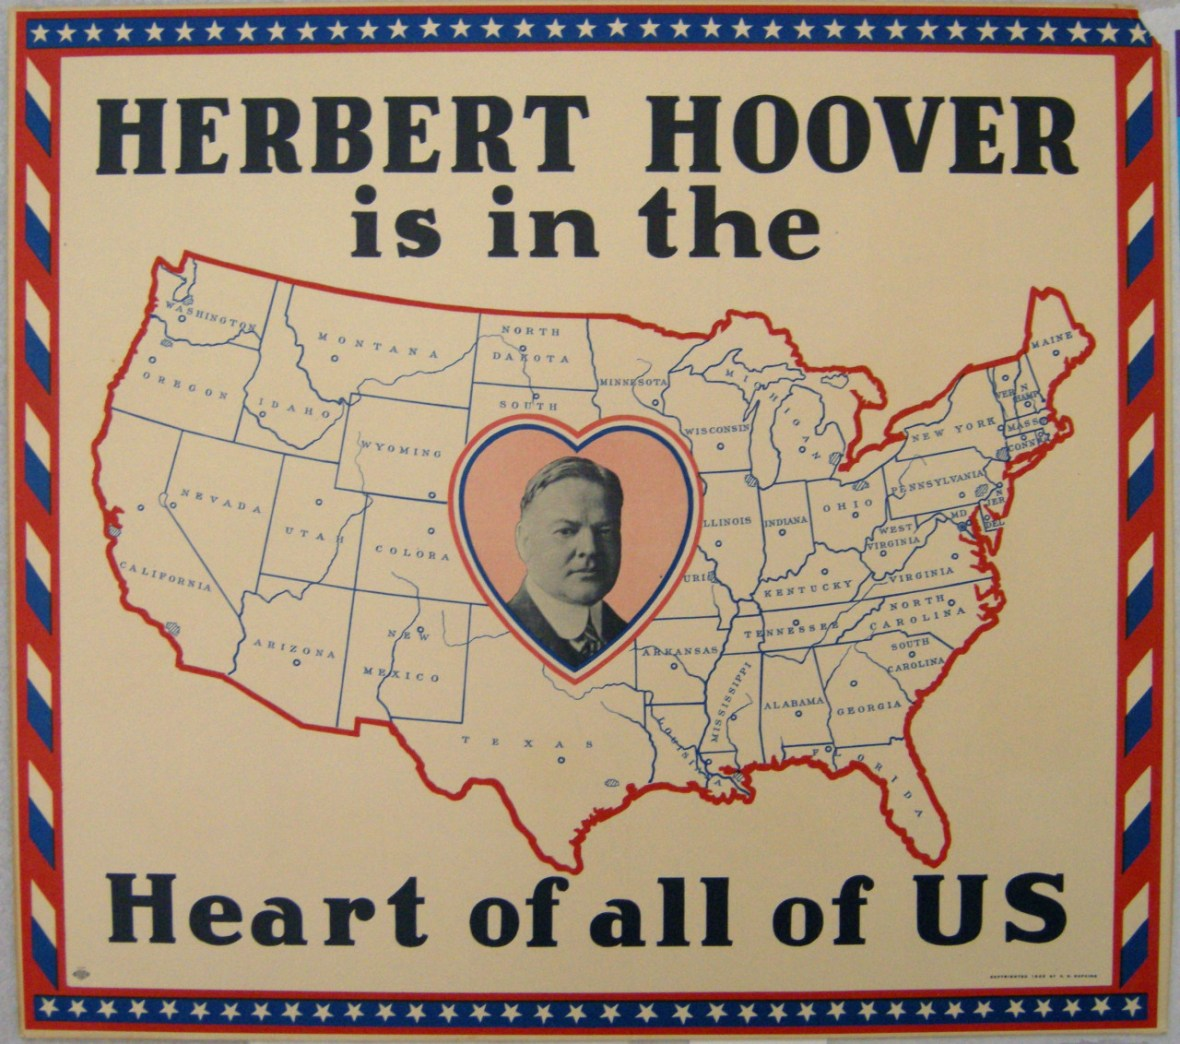 Herbert Hoover campaign poster - 1928